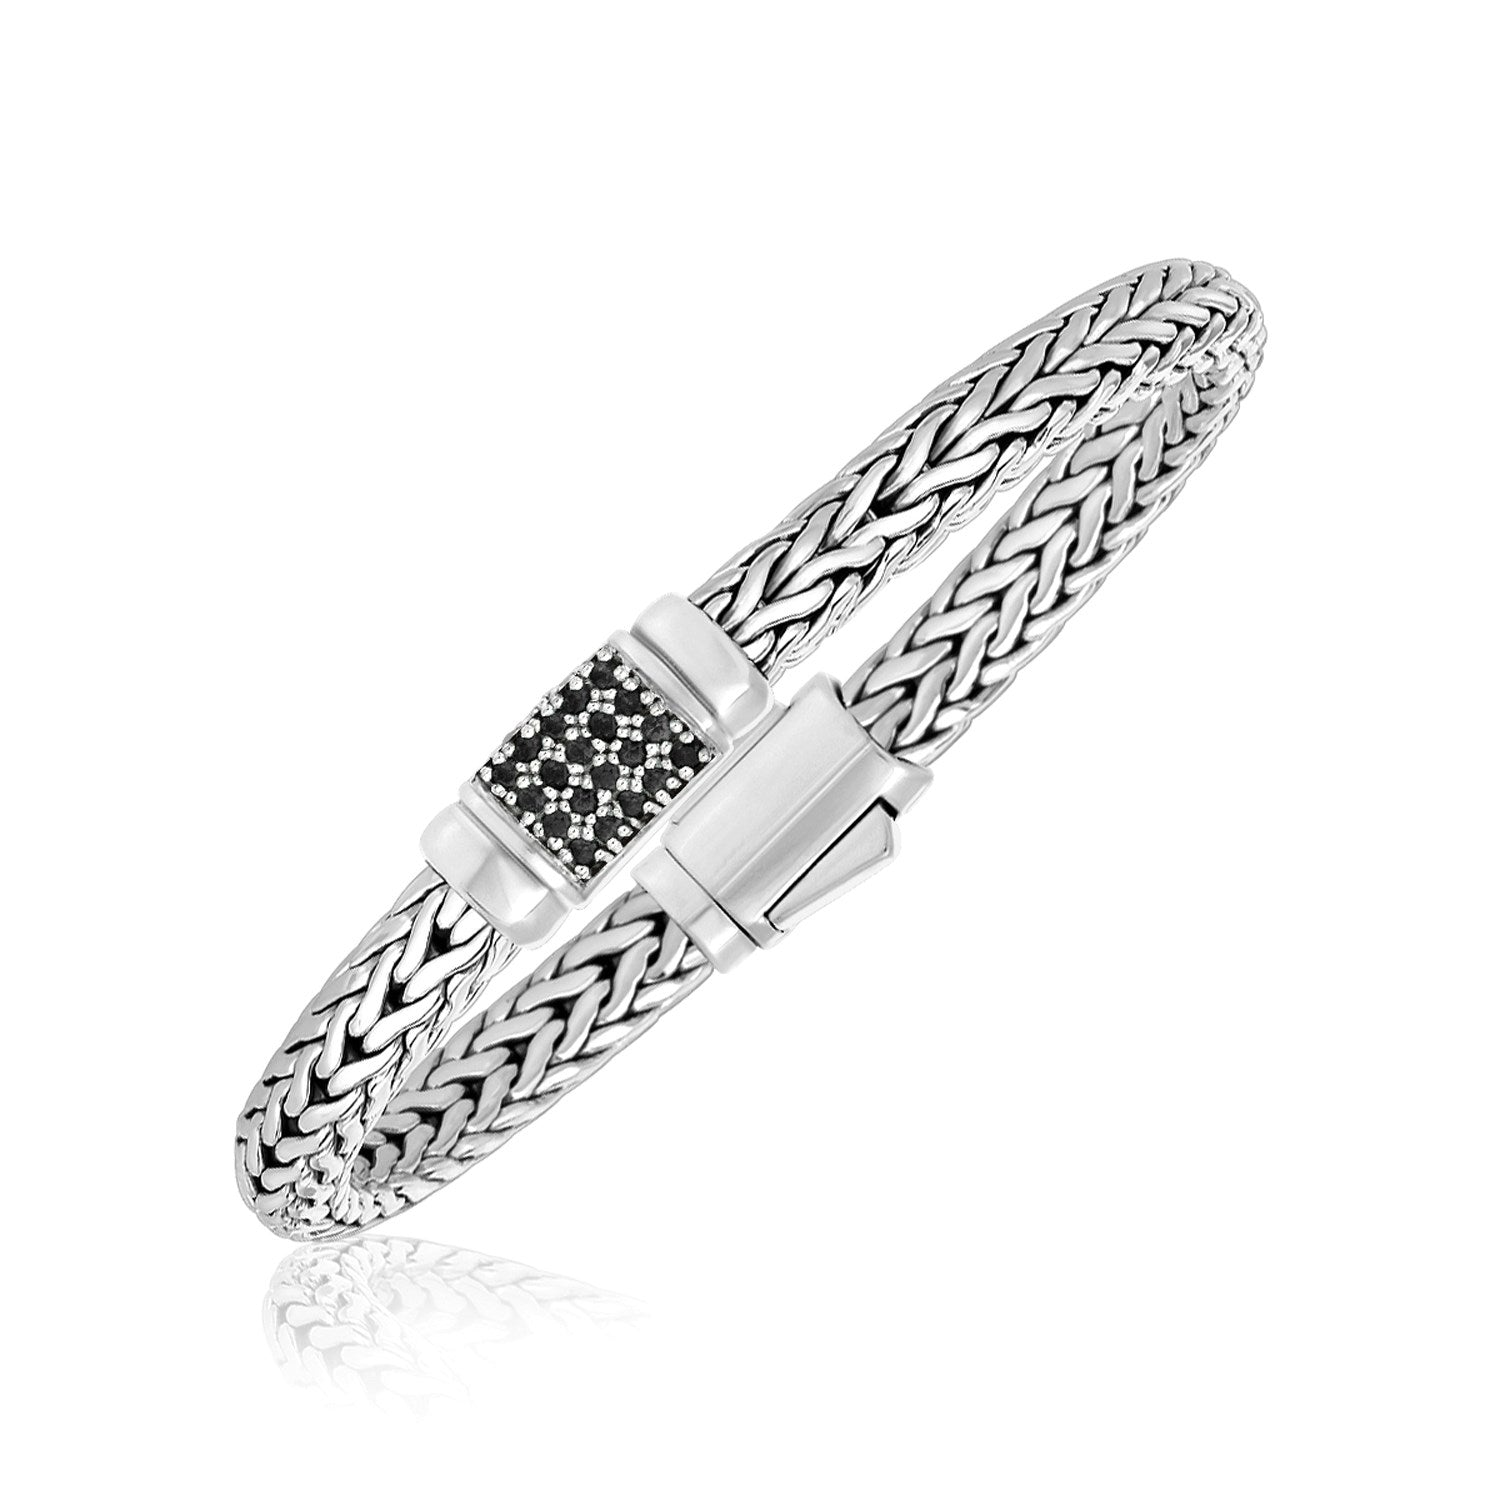 Sterling Silver Weave Style Bracelet with Black Sapphire Accents